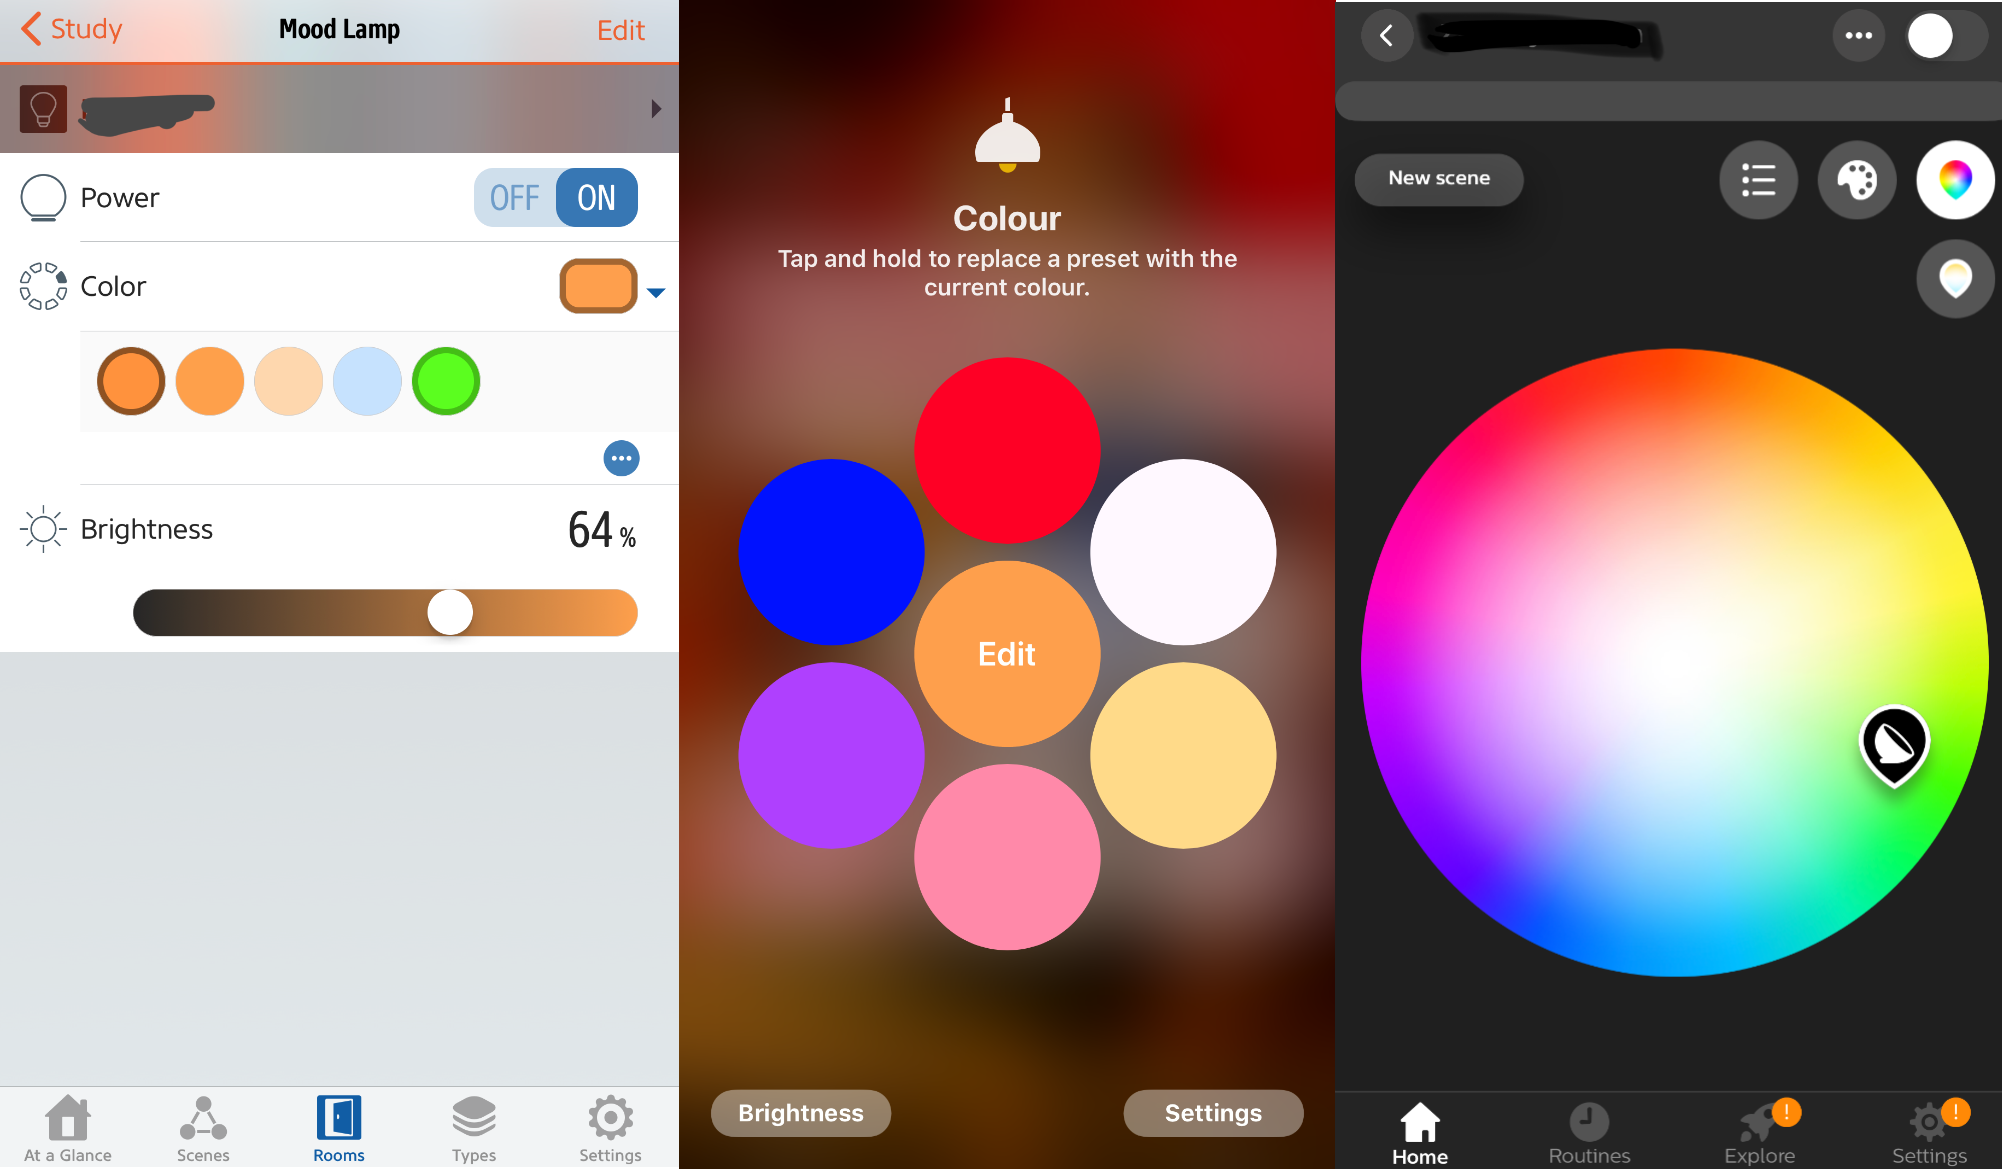 Color selection in the Eve, Home, and Hue apps